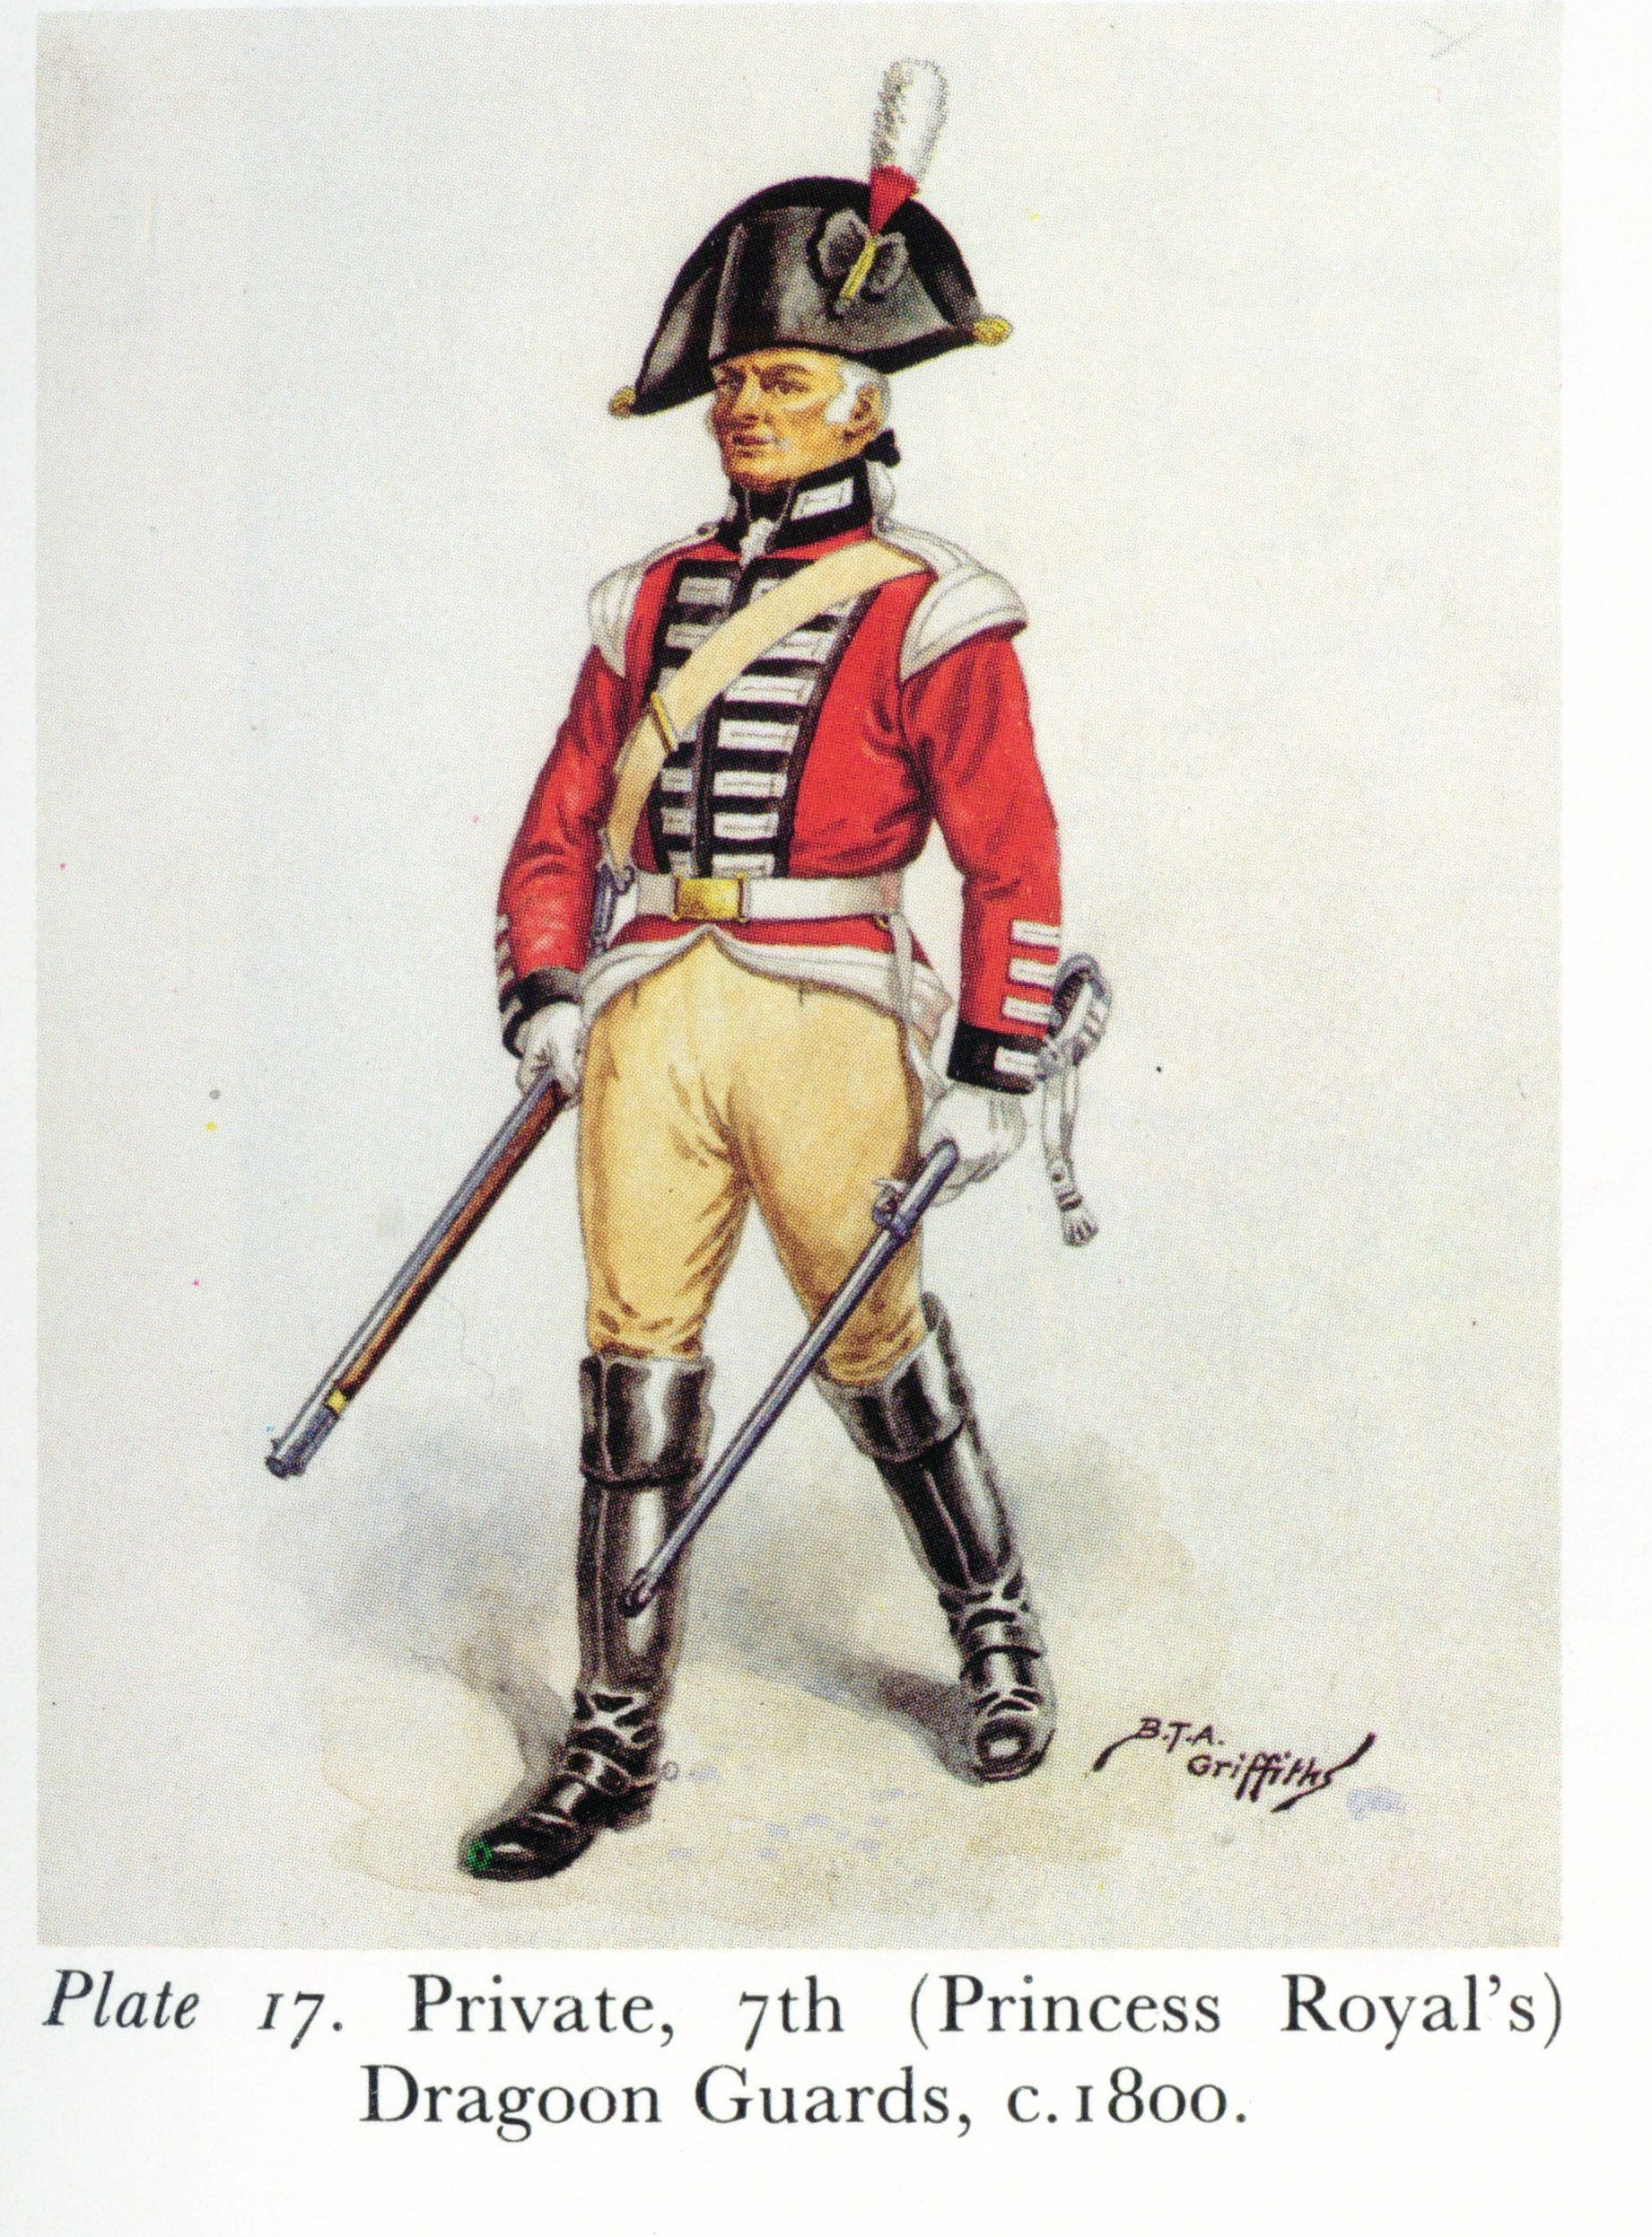 Private, 7th Dragoon Guards